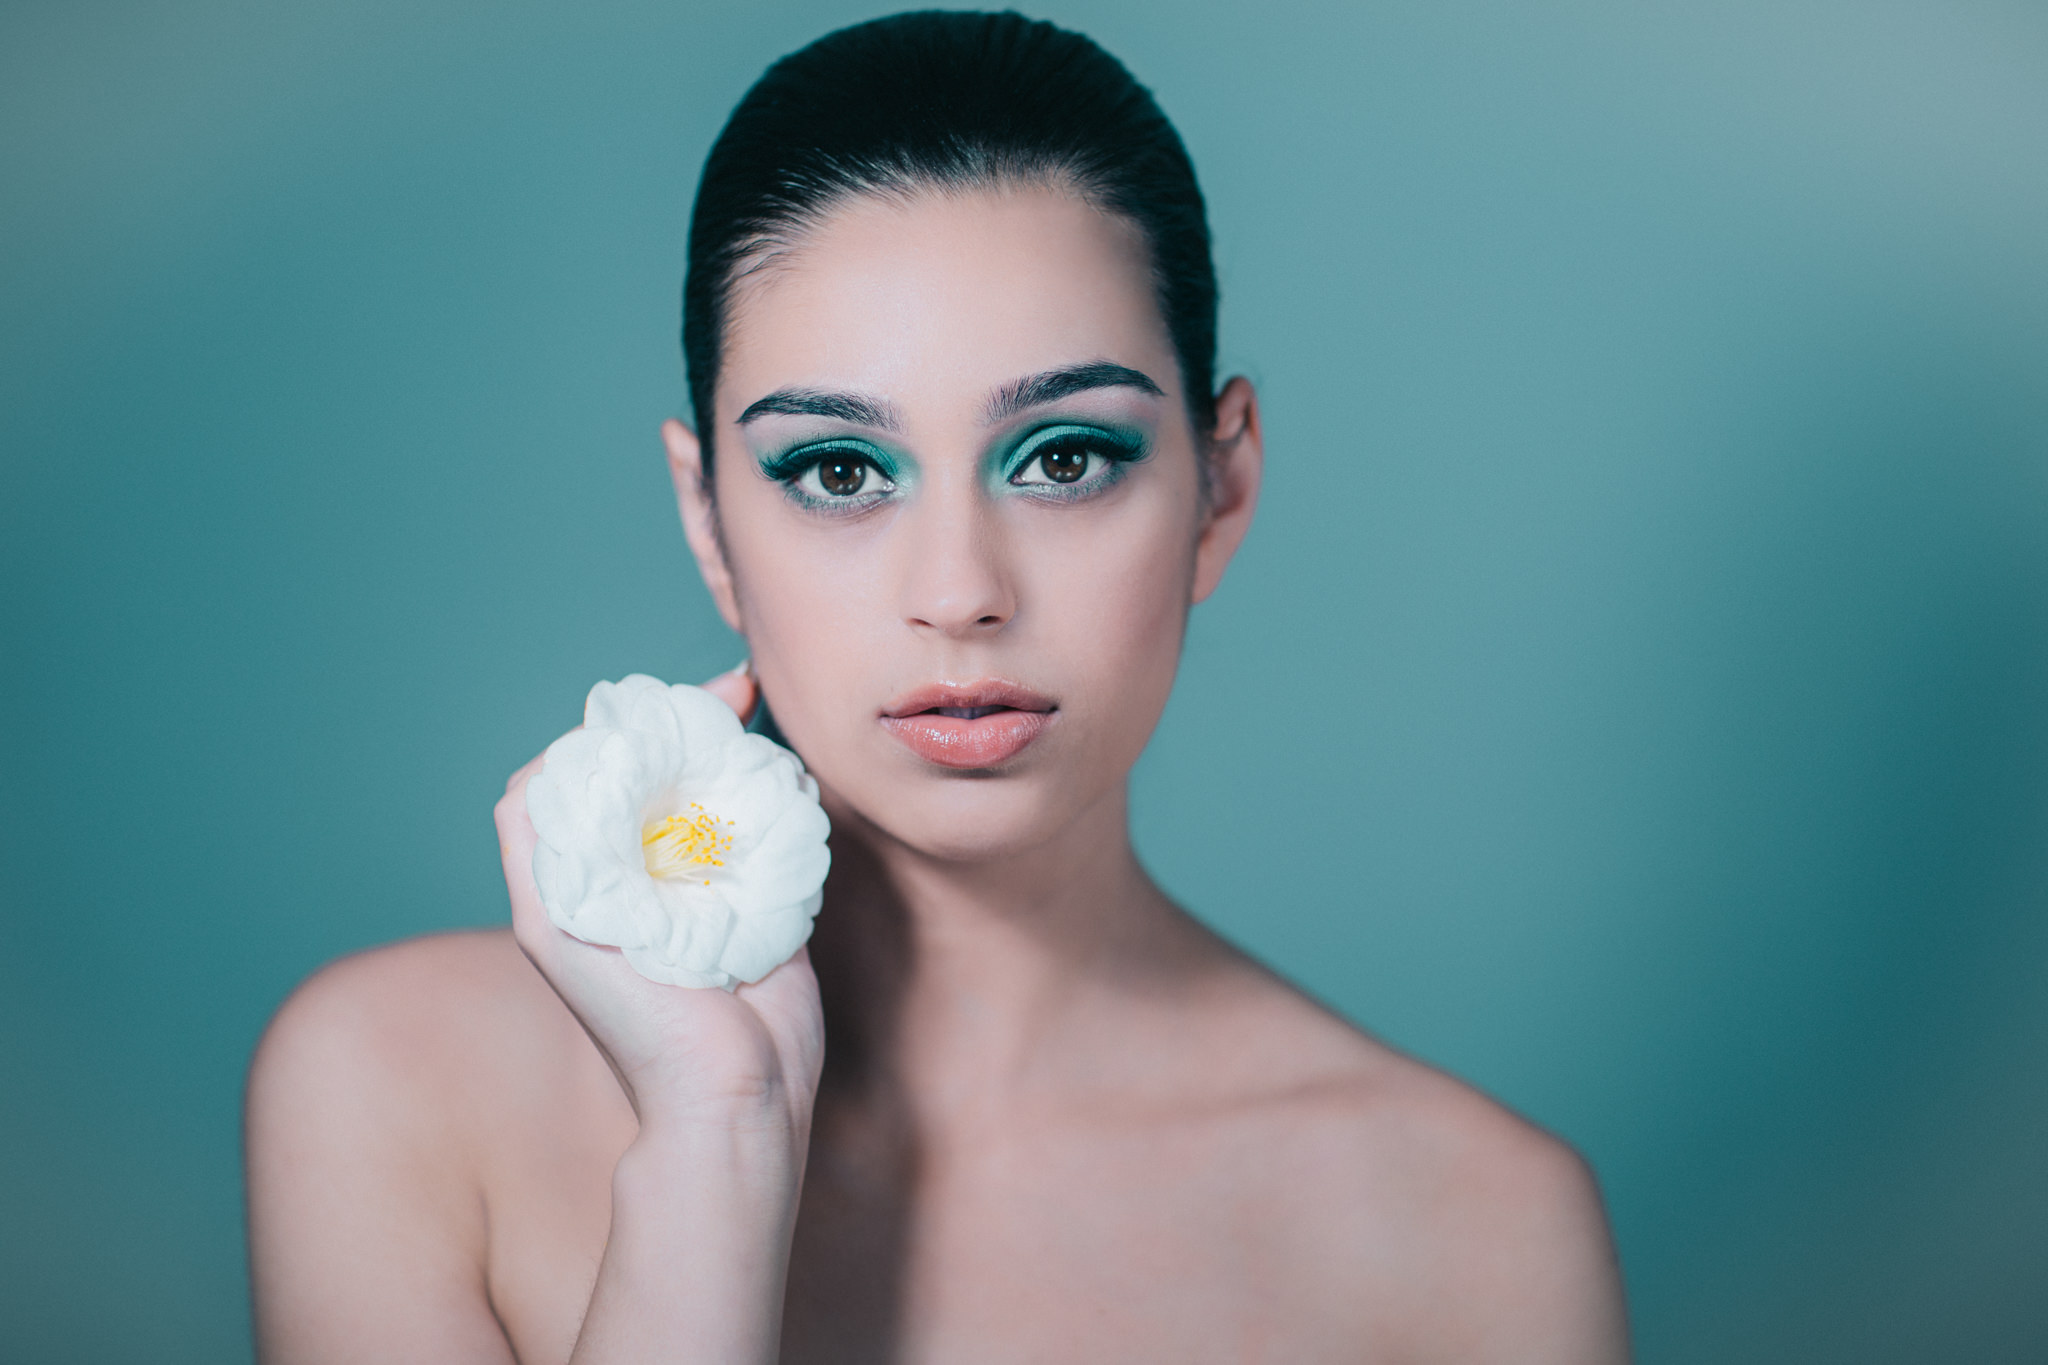 blue model with flower - beauty photographer from Melbourne, Australia